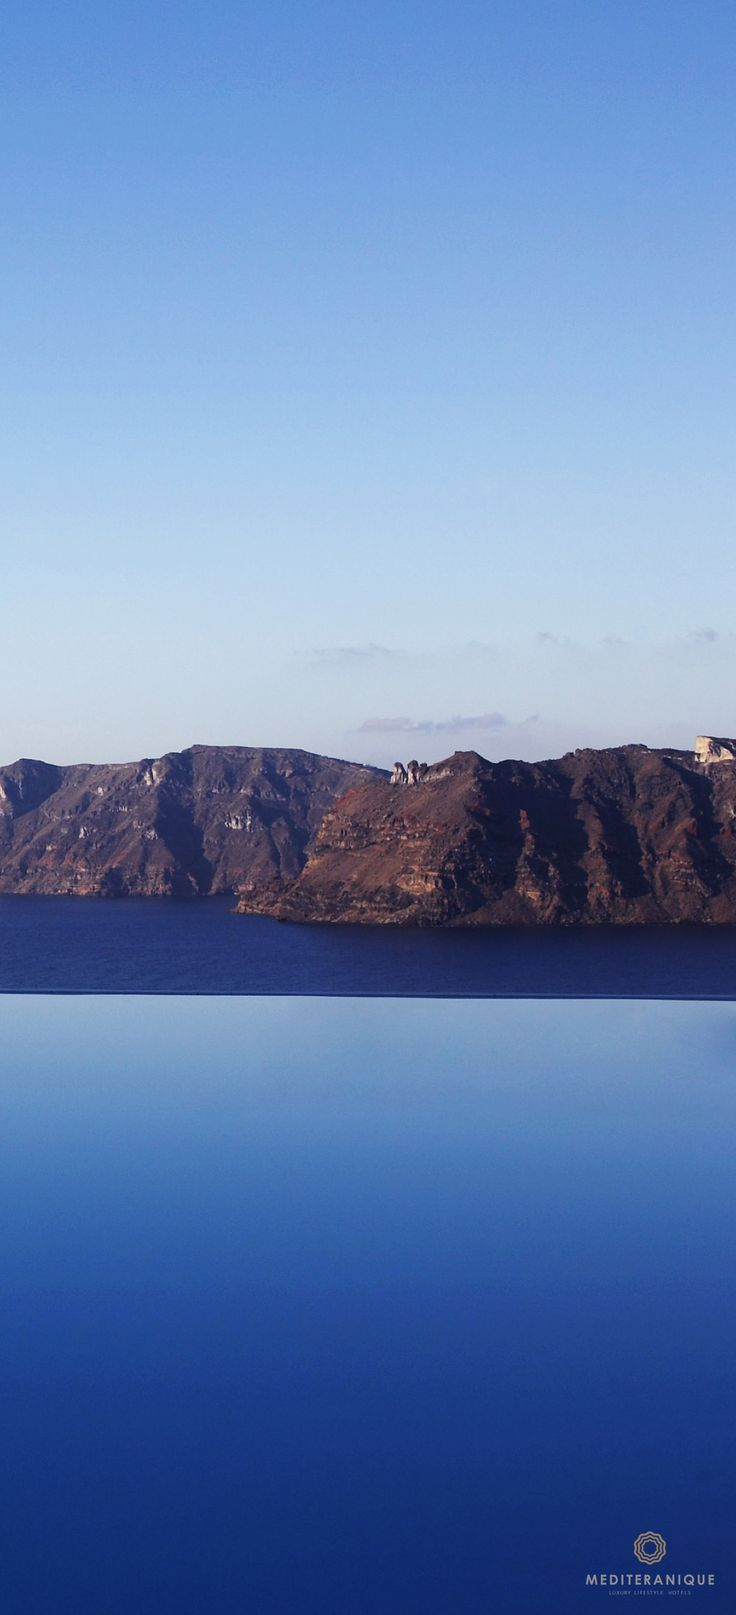 Mykonos tours amp travel bill amp coo hotel in mykonos greece - The Infinity Pool At The Katikies Hotel In Santorini Greece